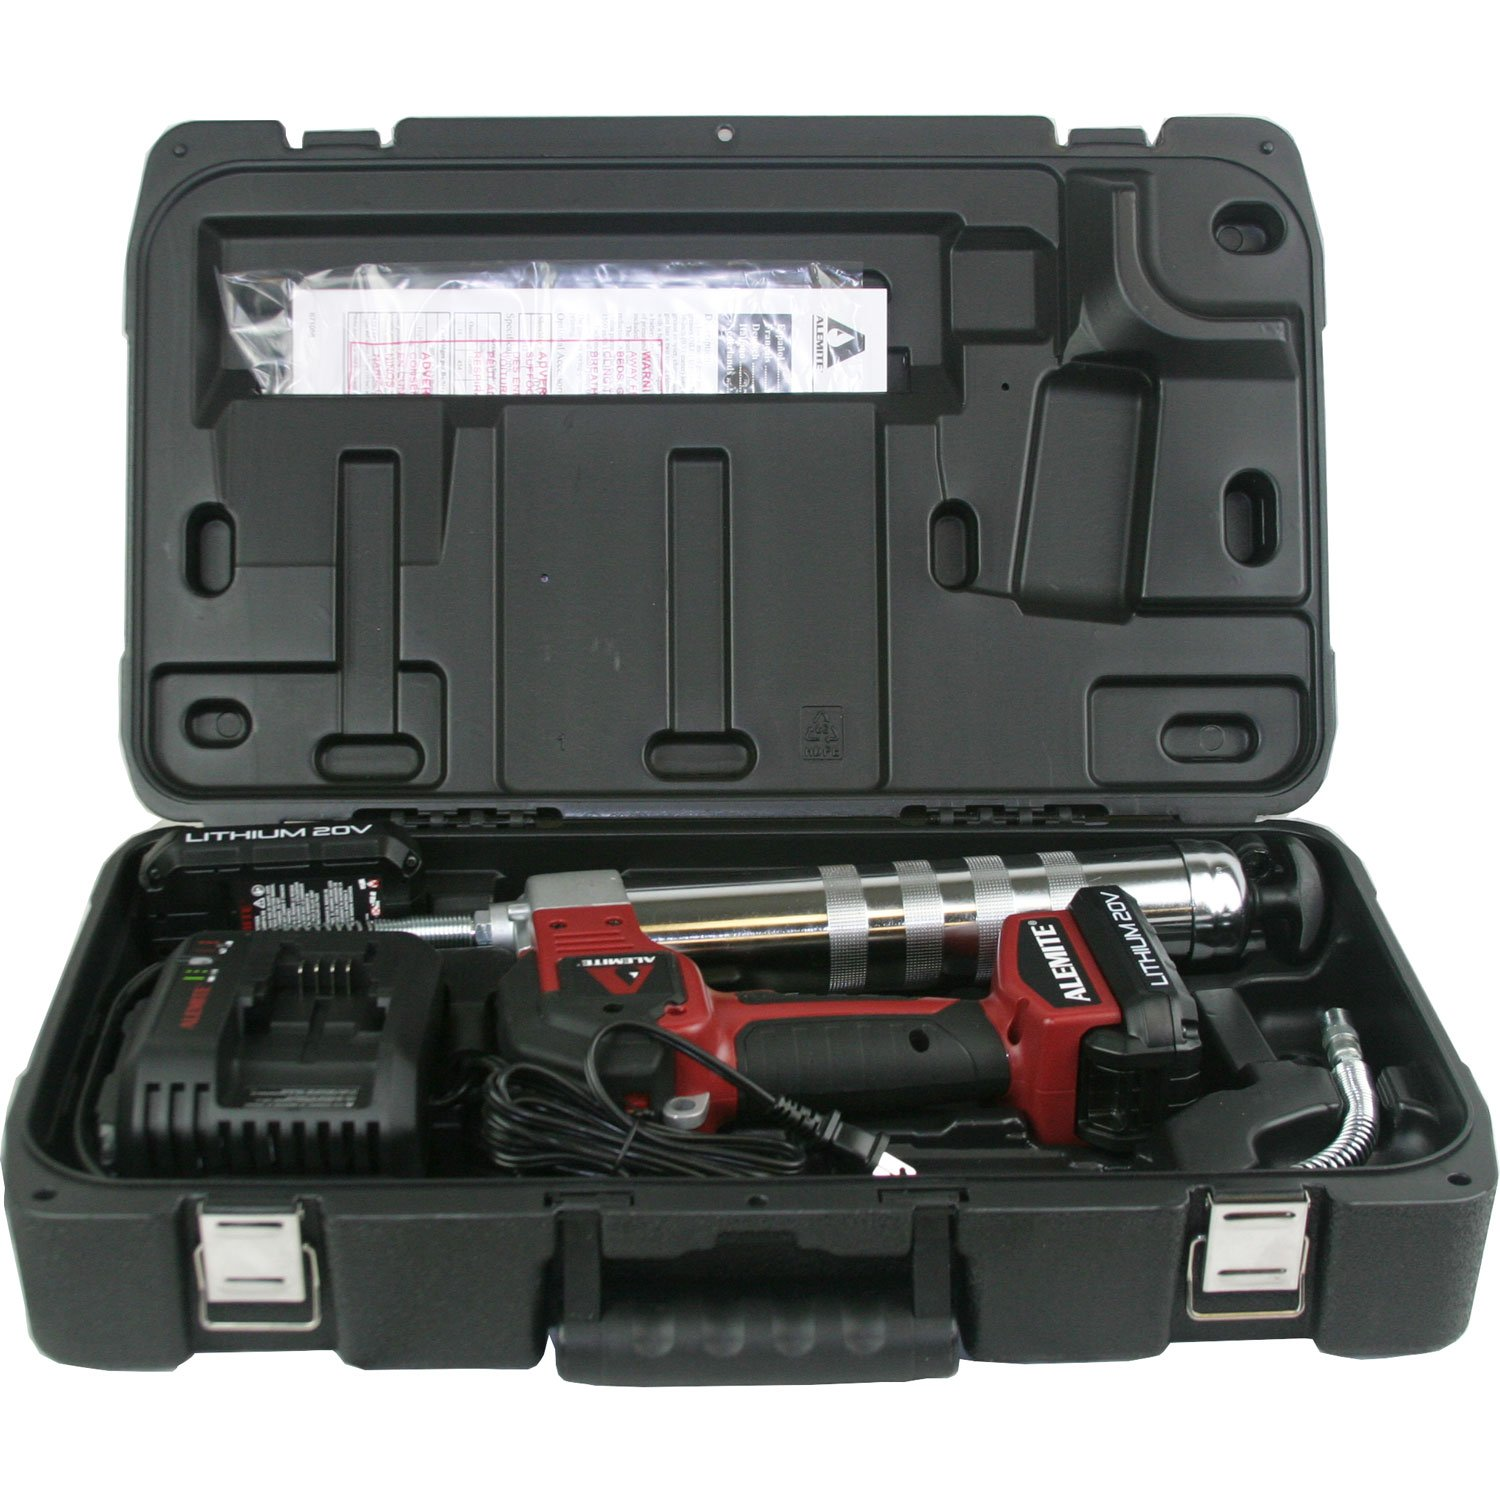 Alemite 596-B 20-Volt Lithium-Ion 2-Speed Cordless Grease Gun Kit with LCD